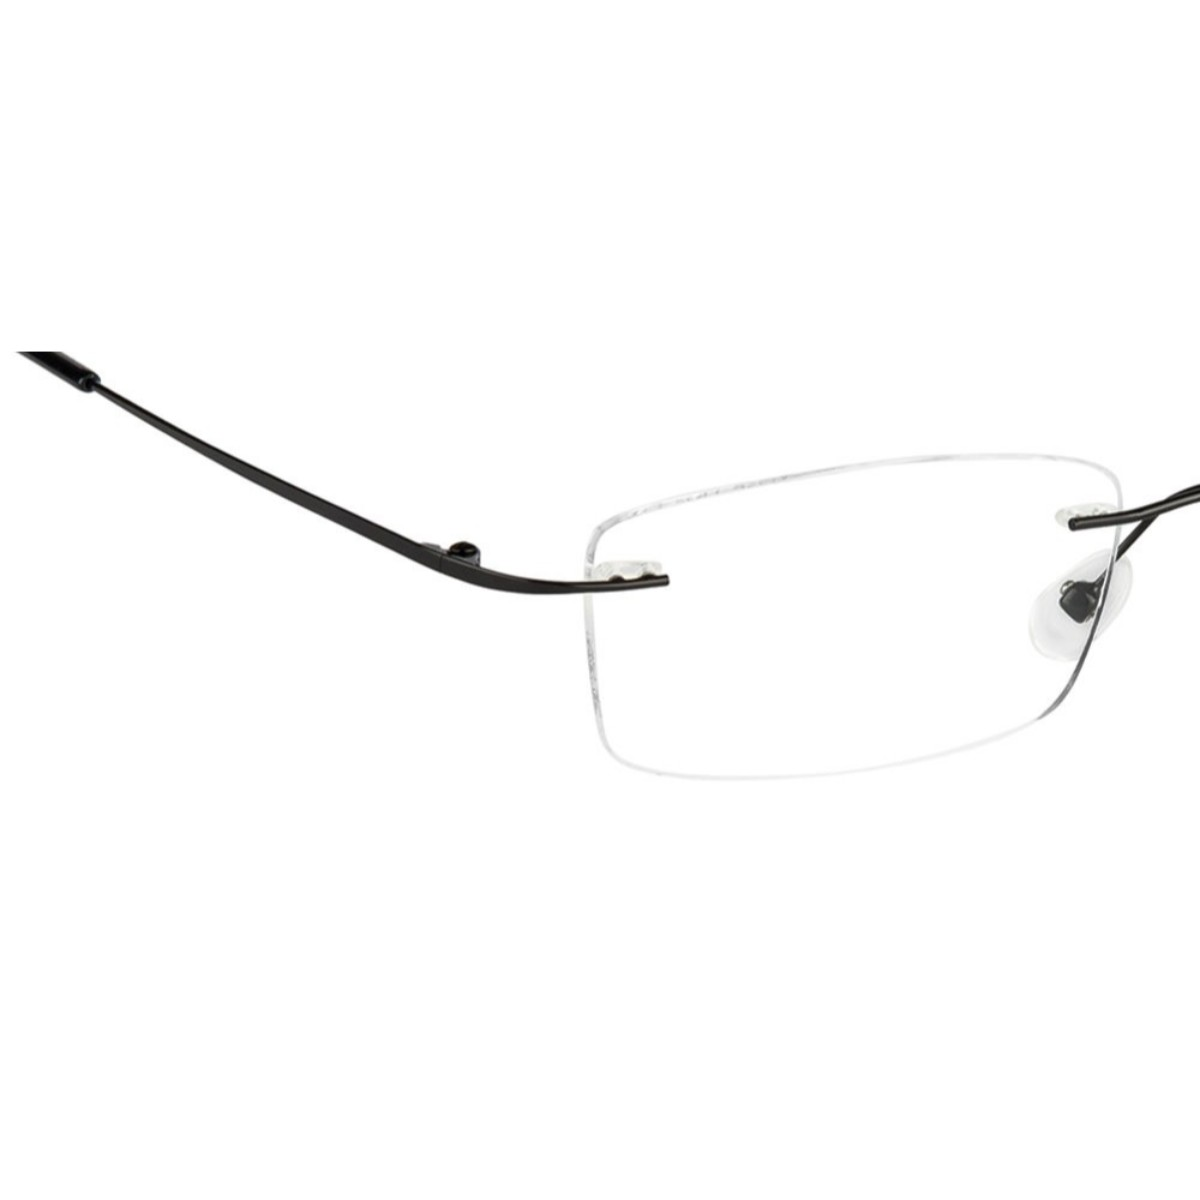 Black Rimless Computer Glasses with Anti Glare Coating